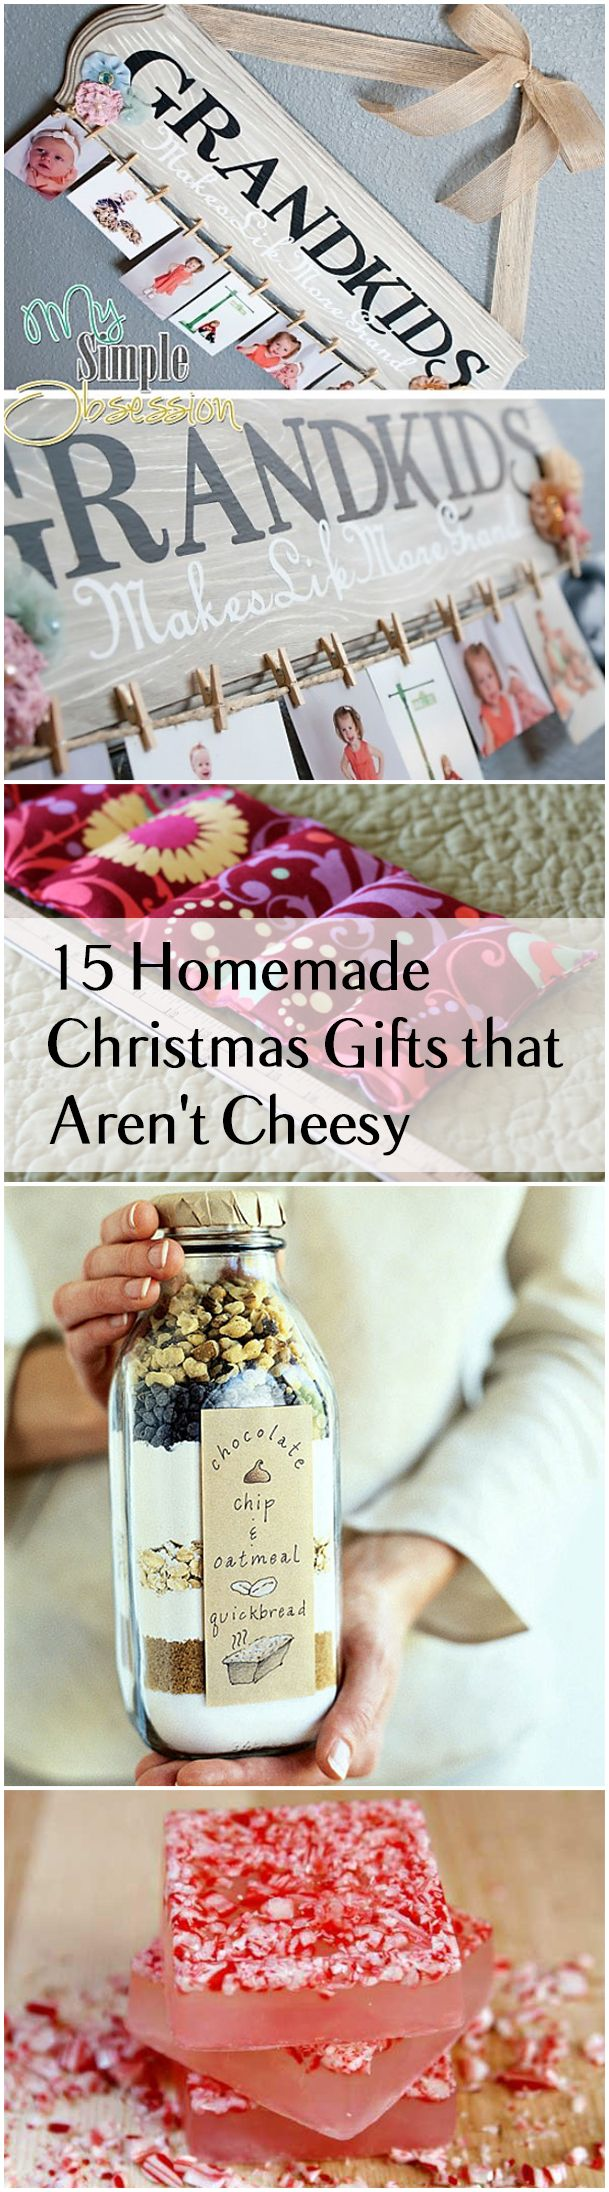 Homemade christmas gifts for grandparents pinterest crafts